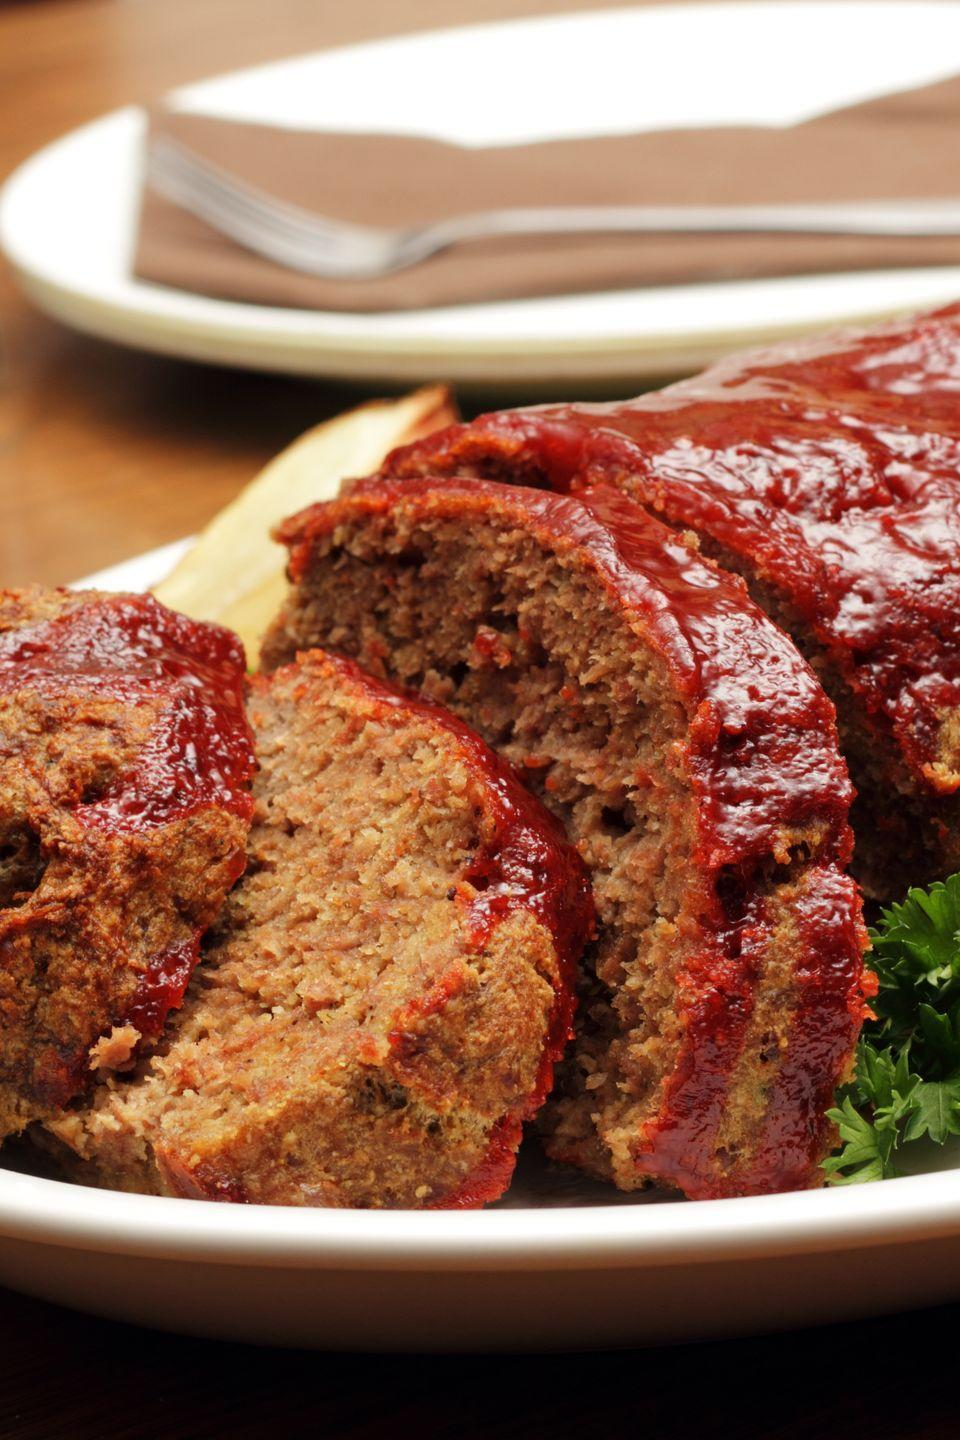 """<p>PSA: Meatloaf can be frozen for up to three months! Which means you should make a few batches at a time so you always have some in the freezer to heat up for a cozy meal, or slice cold into a sandwich. </p><p><a href=""""https://www.goodhousekeeping.com/food-recipes/a8442/healthy-makeover-meatloaf-ghk1107/"""" rel=""""nofollow noopener"""" target=""""_blank"""" data-ylk=""""slk:Get the recipe for Healthy Makeover Meatloaf »"""" class=""""link rapid-noclick-resp""""><em>Get the recipe for Healthy Makeover Meatloaf »</em></a></p>"""